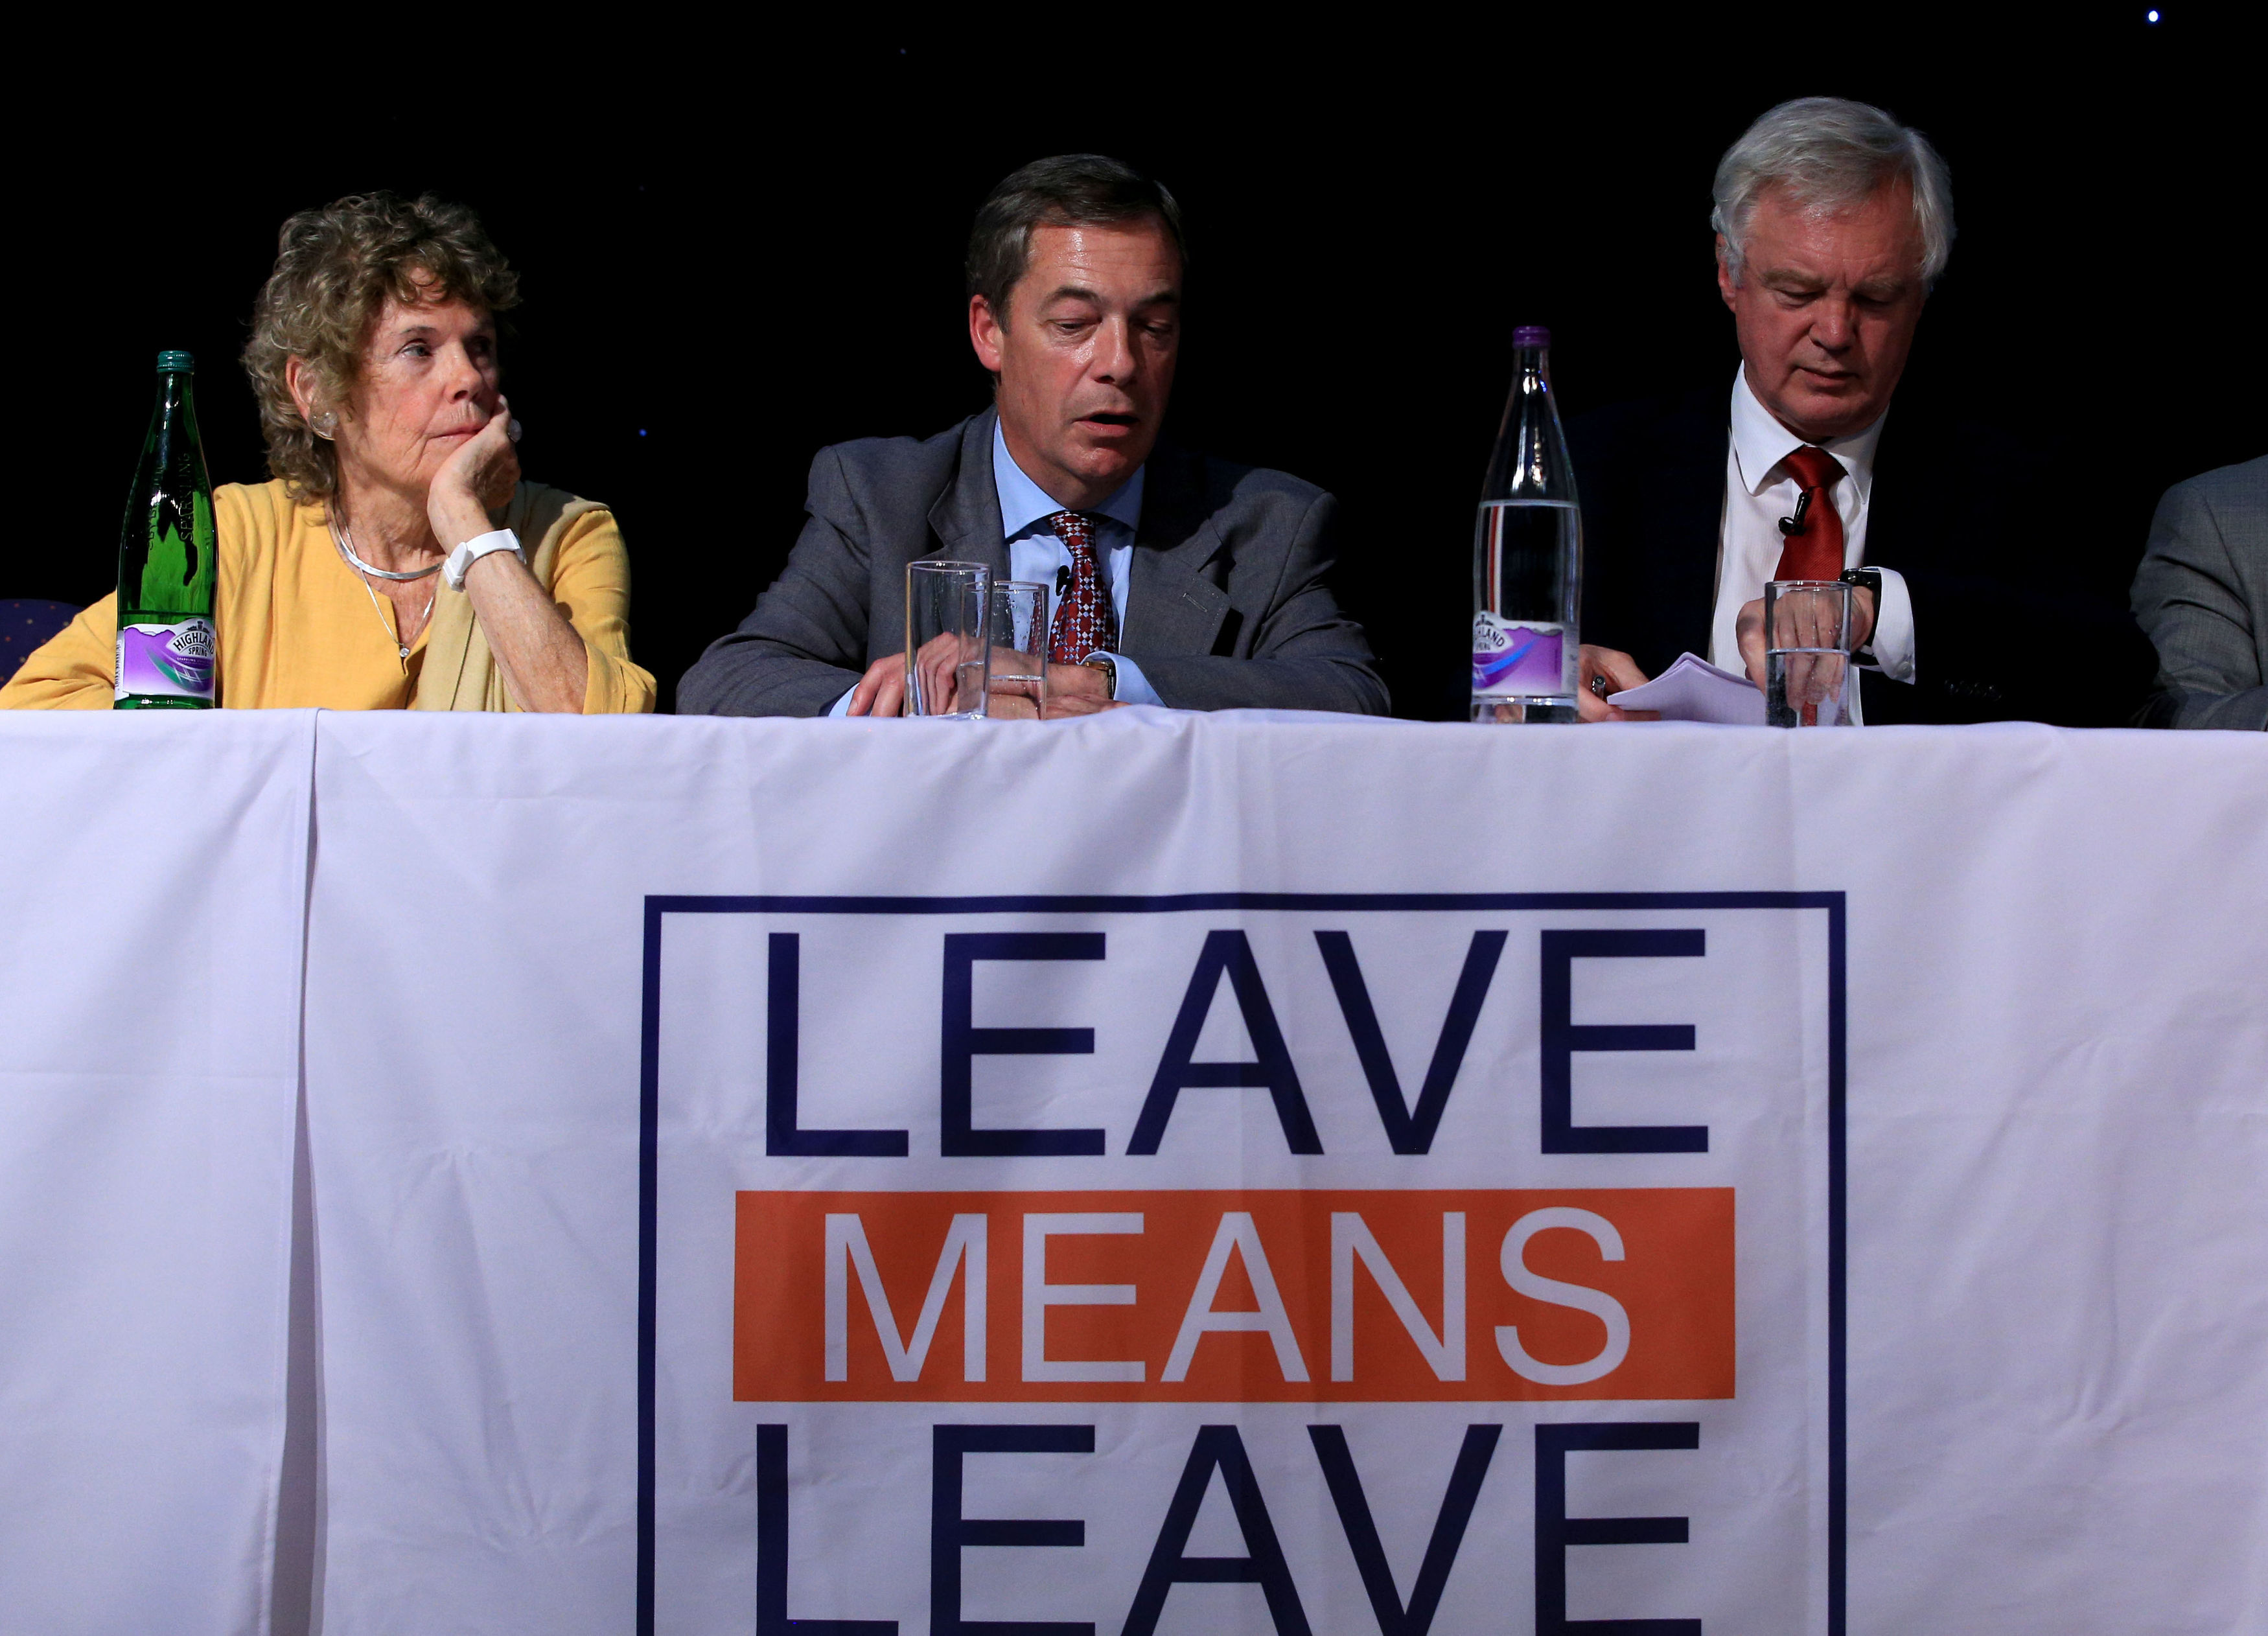 Kate Hoey, Nigel Farage and David Davis at a Leave Means Leave rally in Bolton